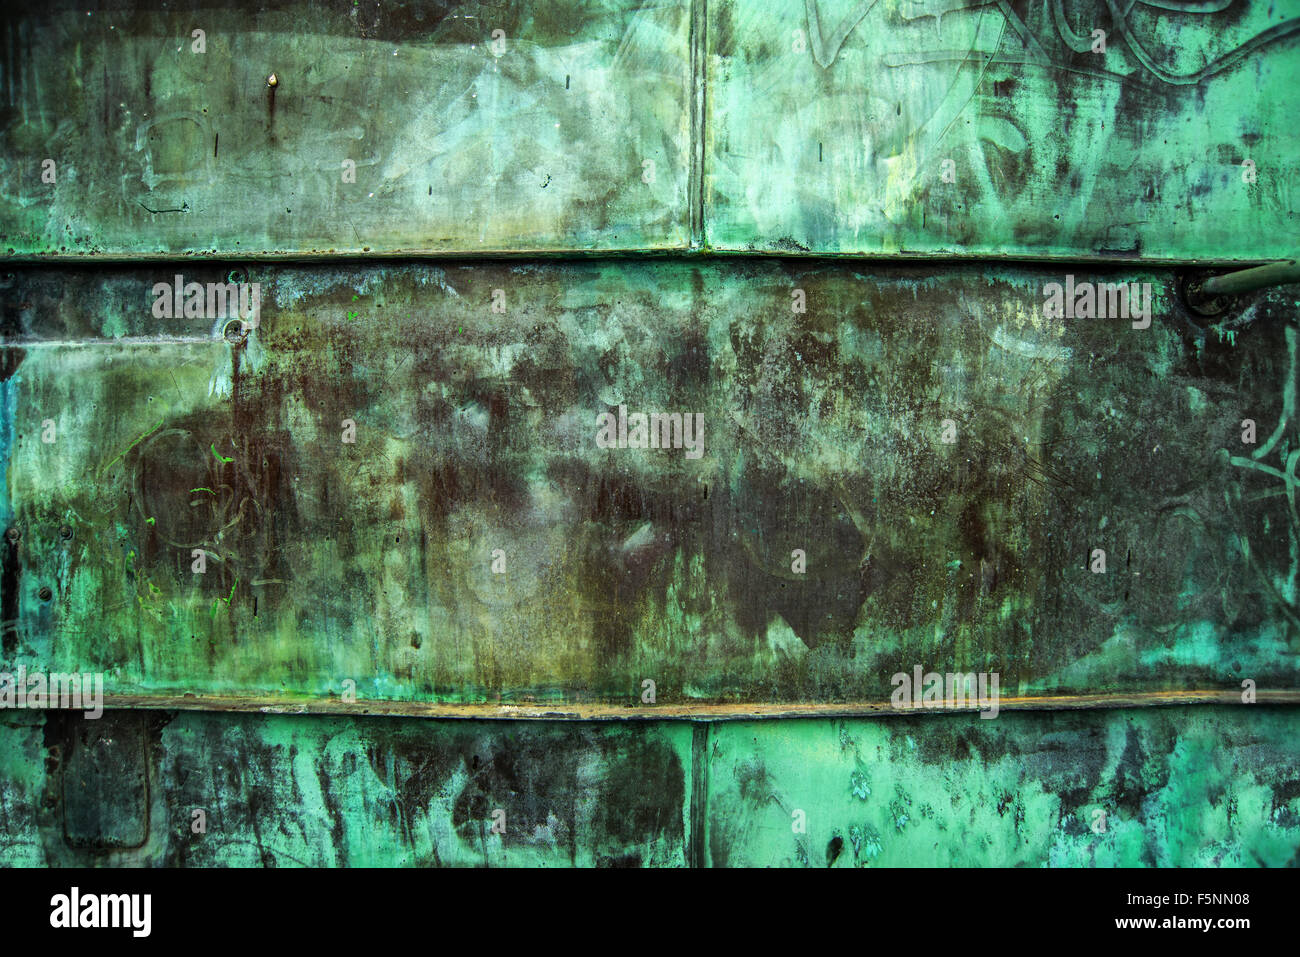 Oxidized Green Copper Metal Plate Texture As Industrial Rustic Background